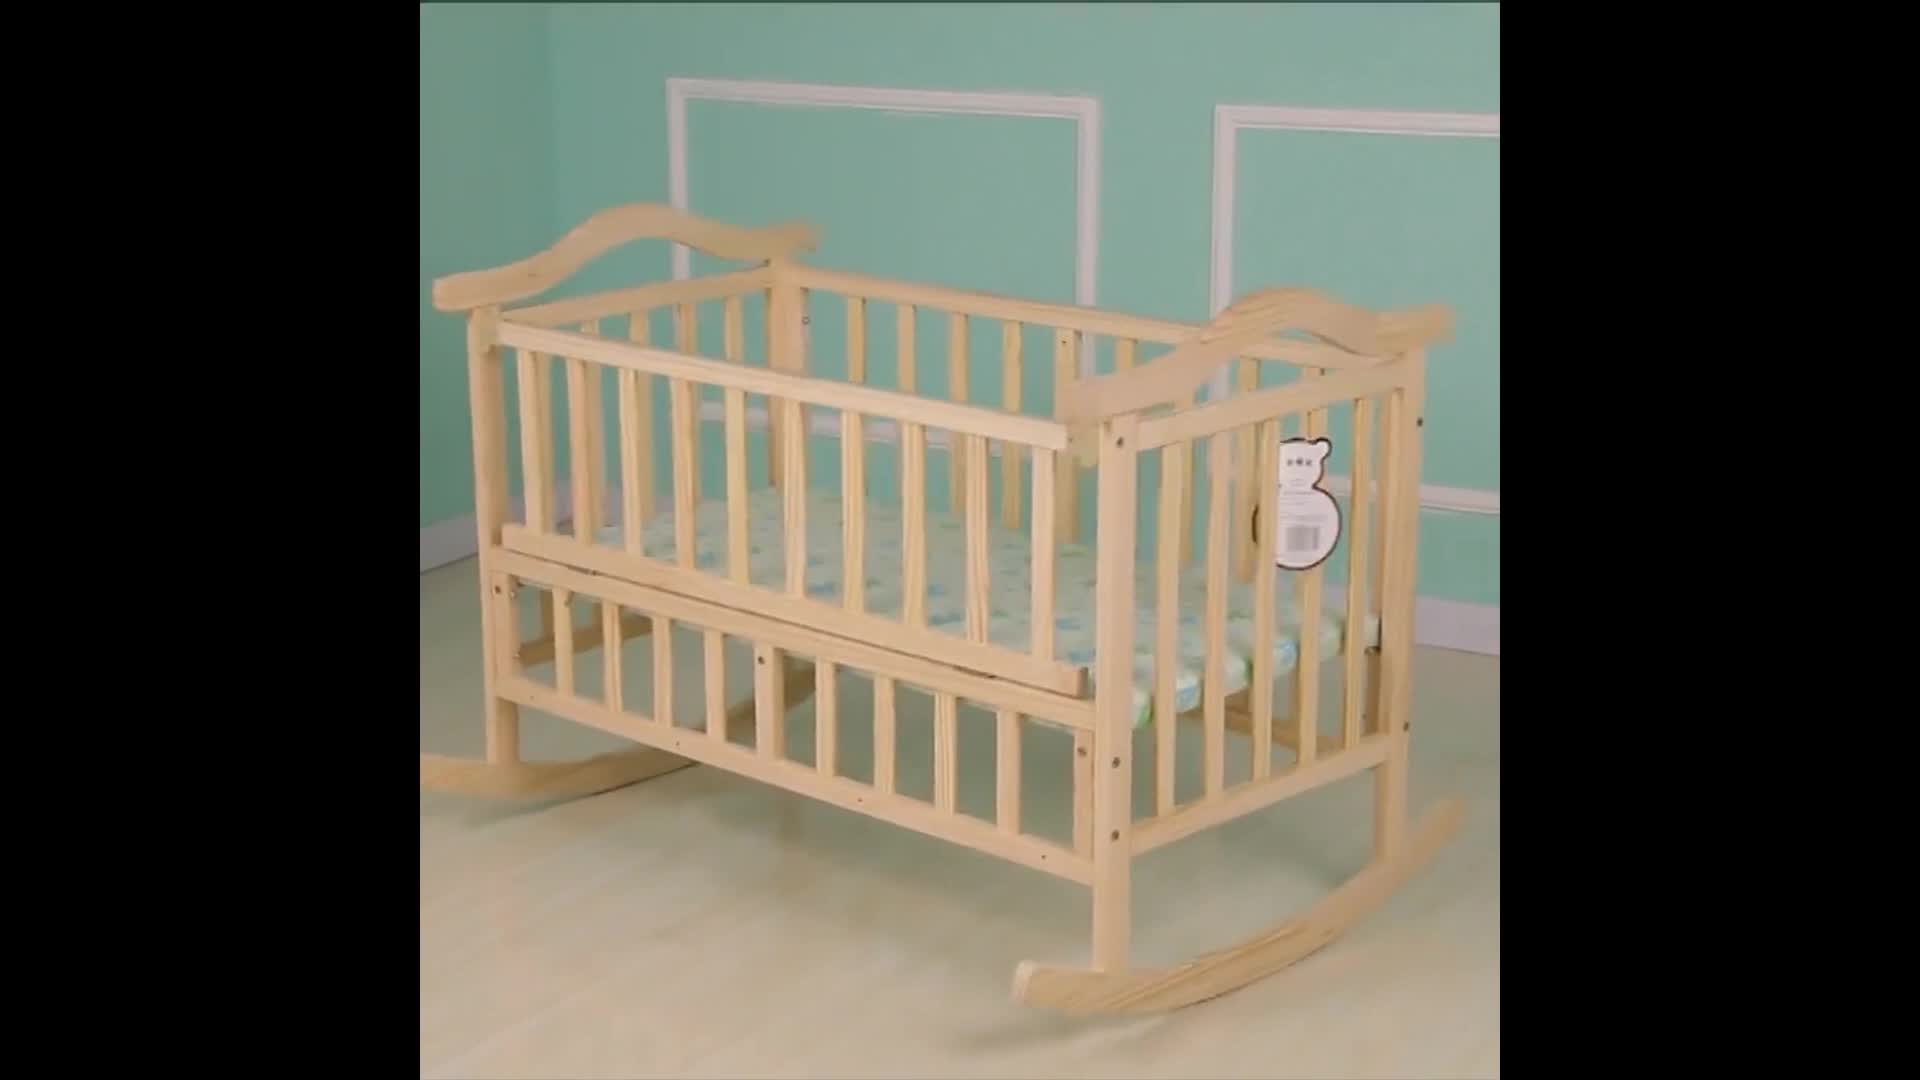 Cot Dimensions Kids Furniture Raw Material Baby Cot Wooden Baby Cot